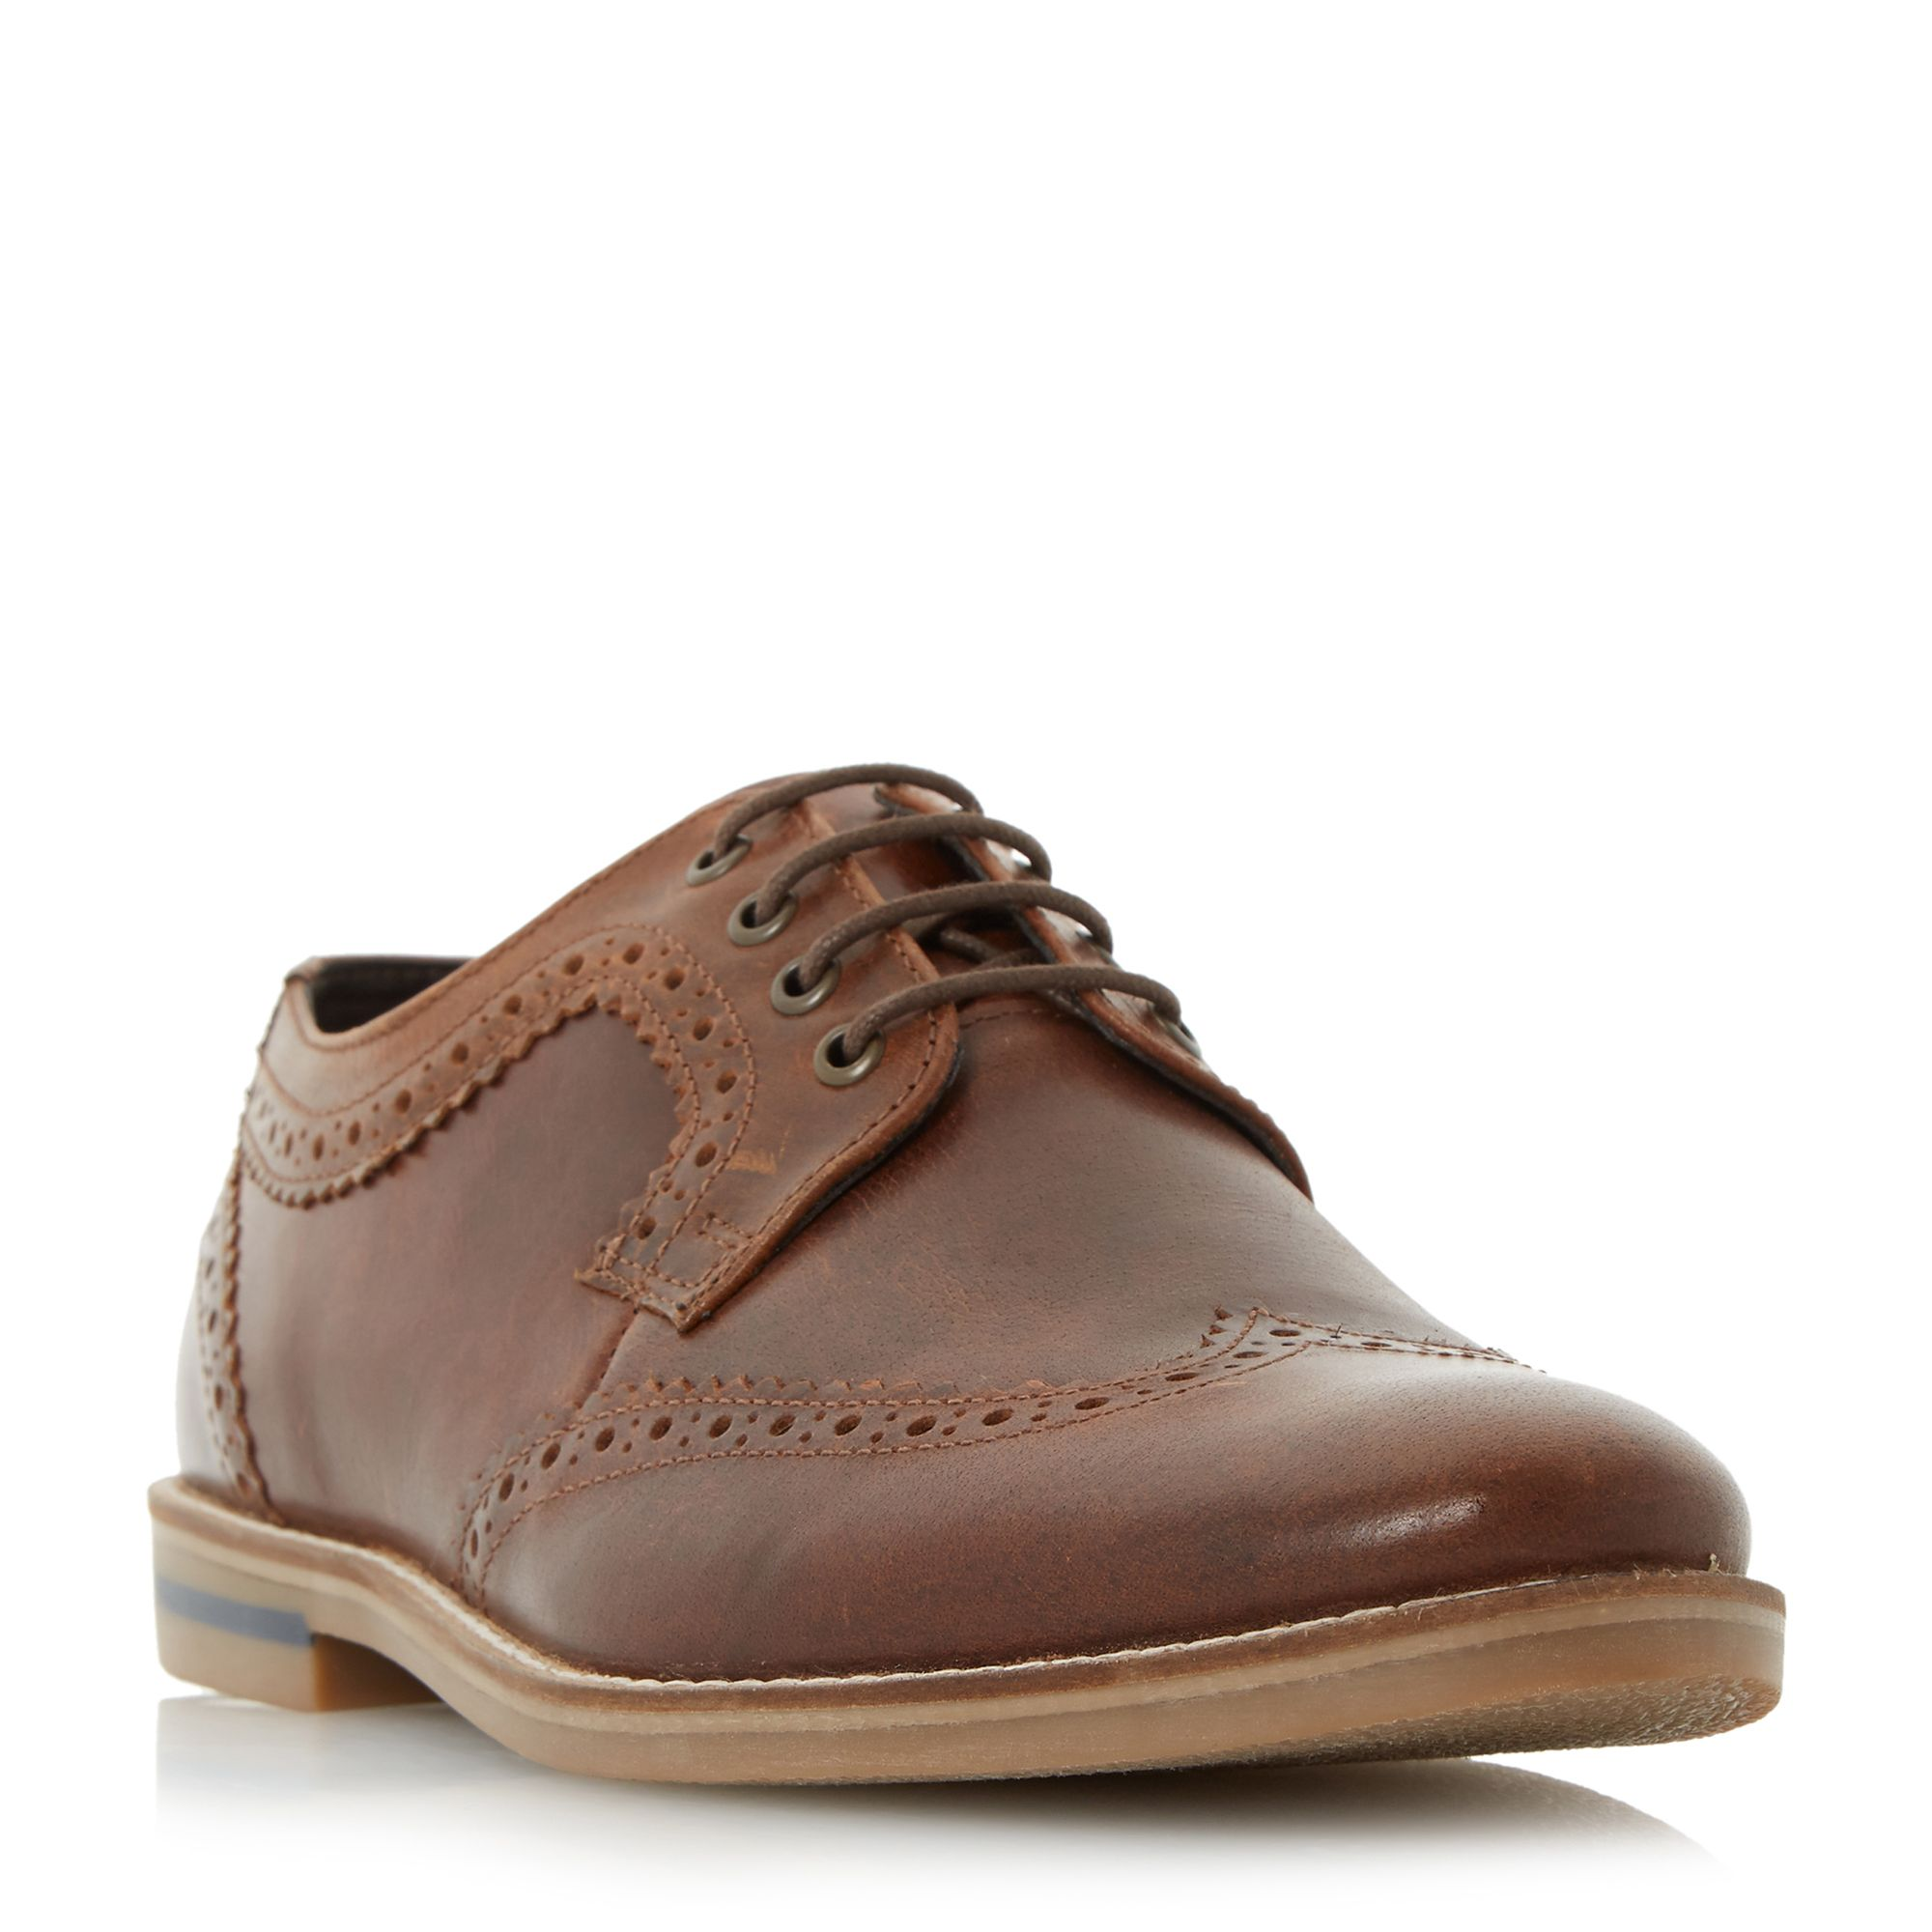 Howick Shoes Review